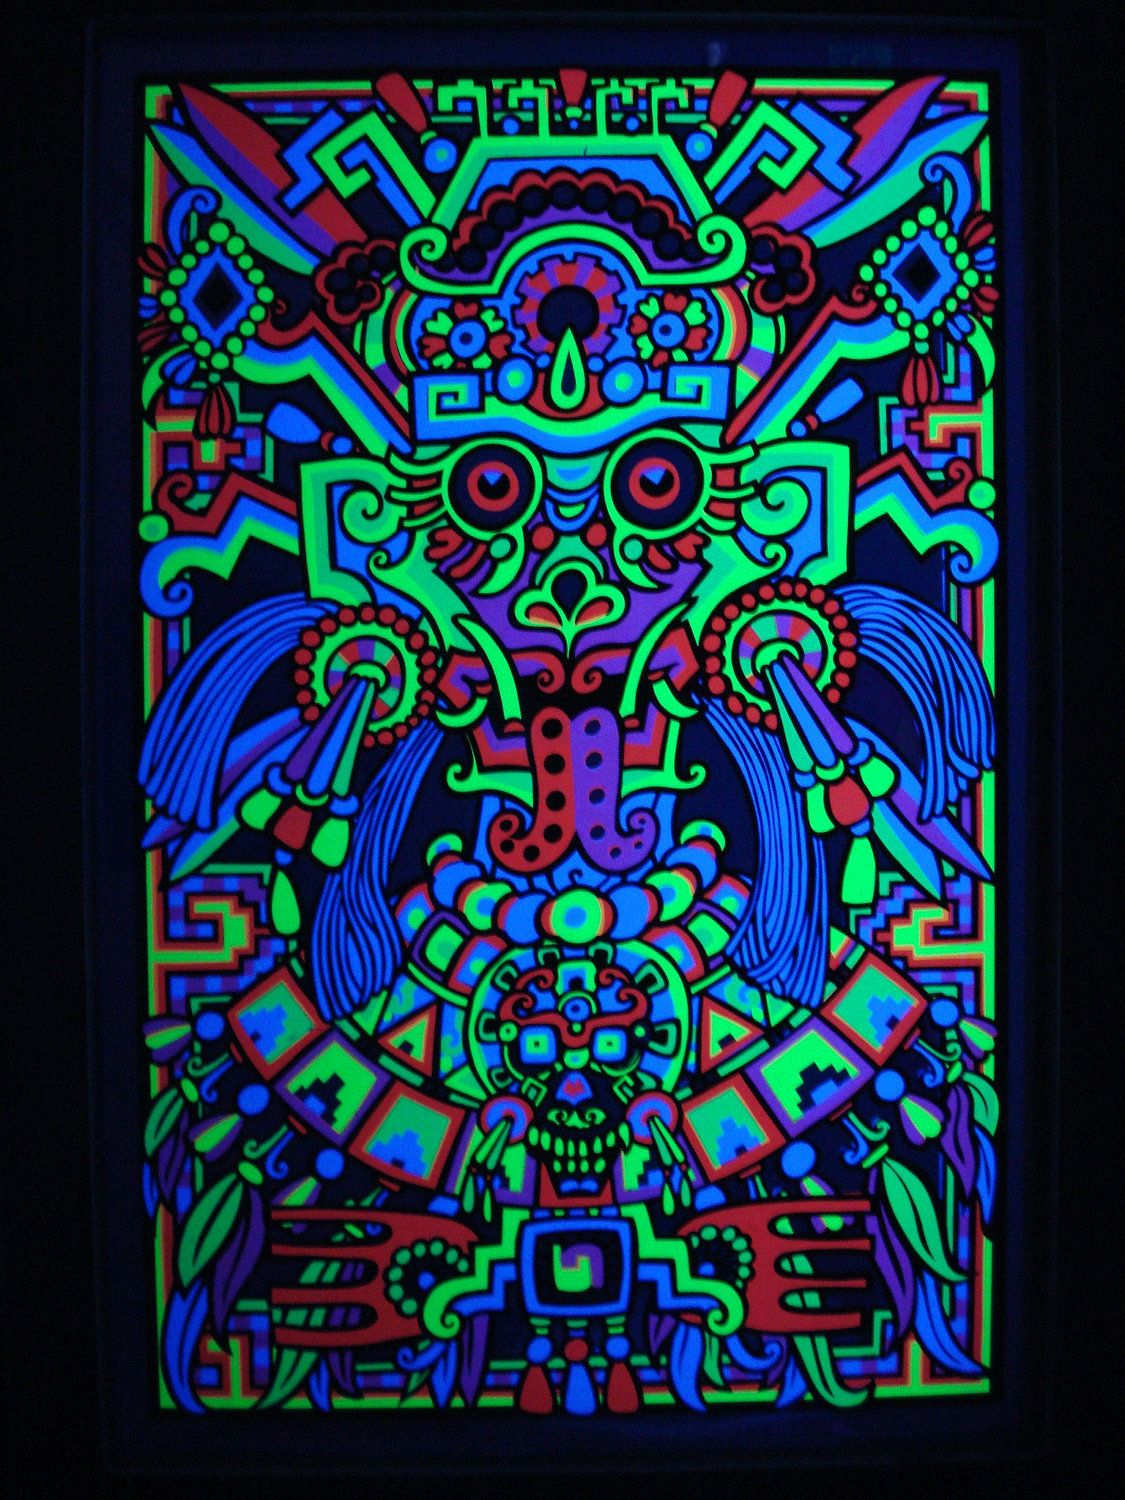 4e89f5a25 Third Eye Foil mylar AZTEC MASK Blacklight poster vintage 1969 psychedelic  mayan art screen print